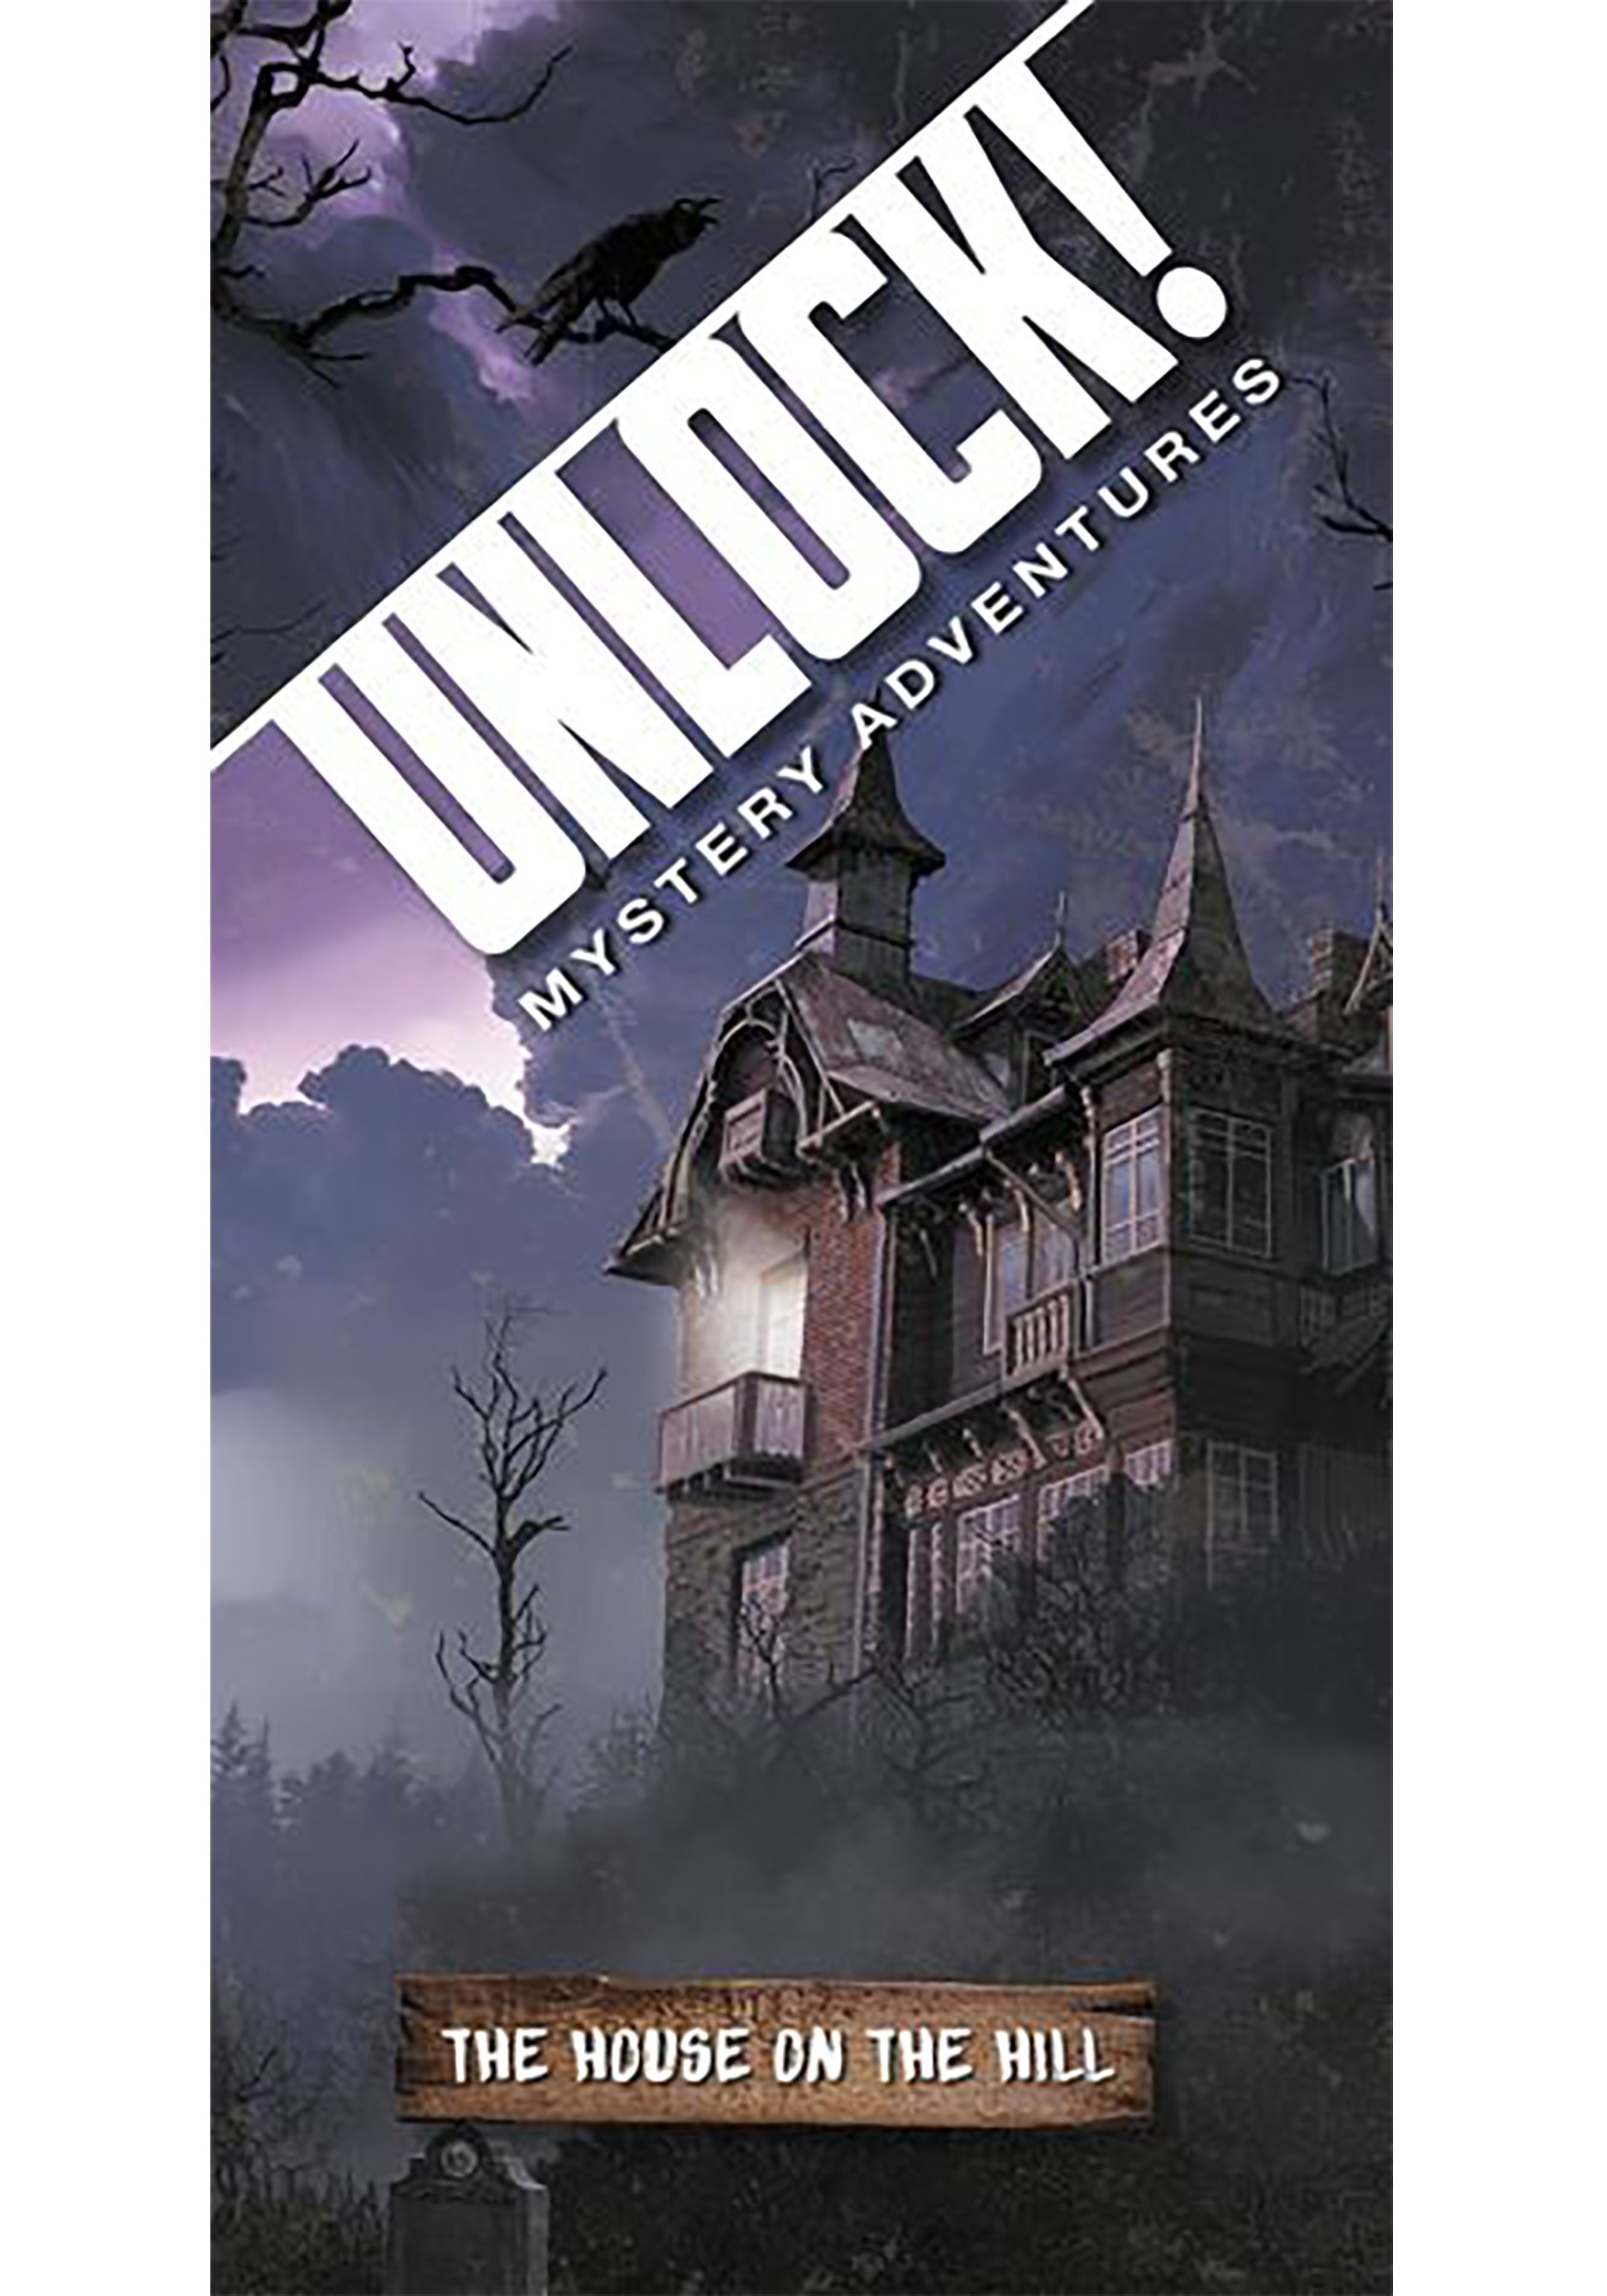 Unlock_The_House_on_the_Hill_Mystery_Adventures_Card_Game